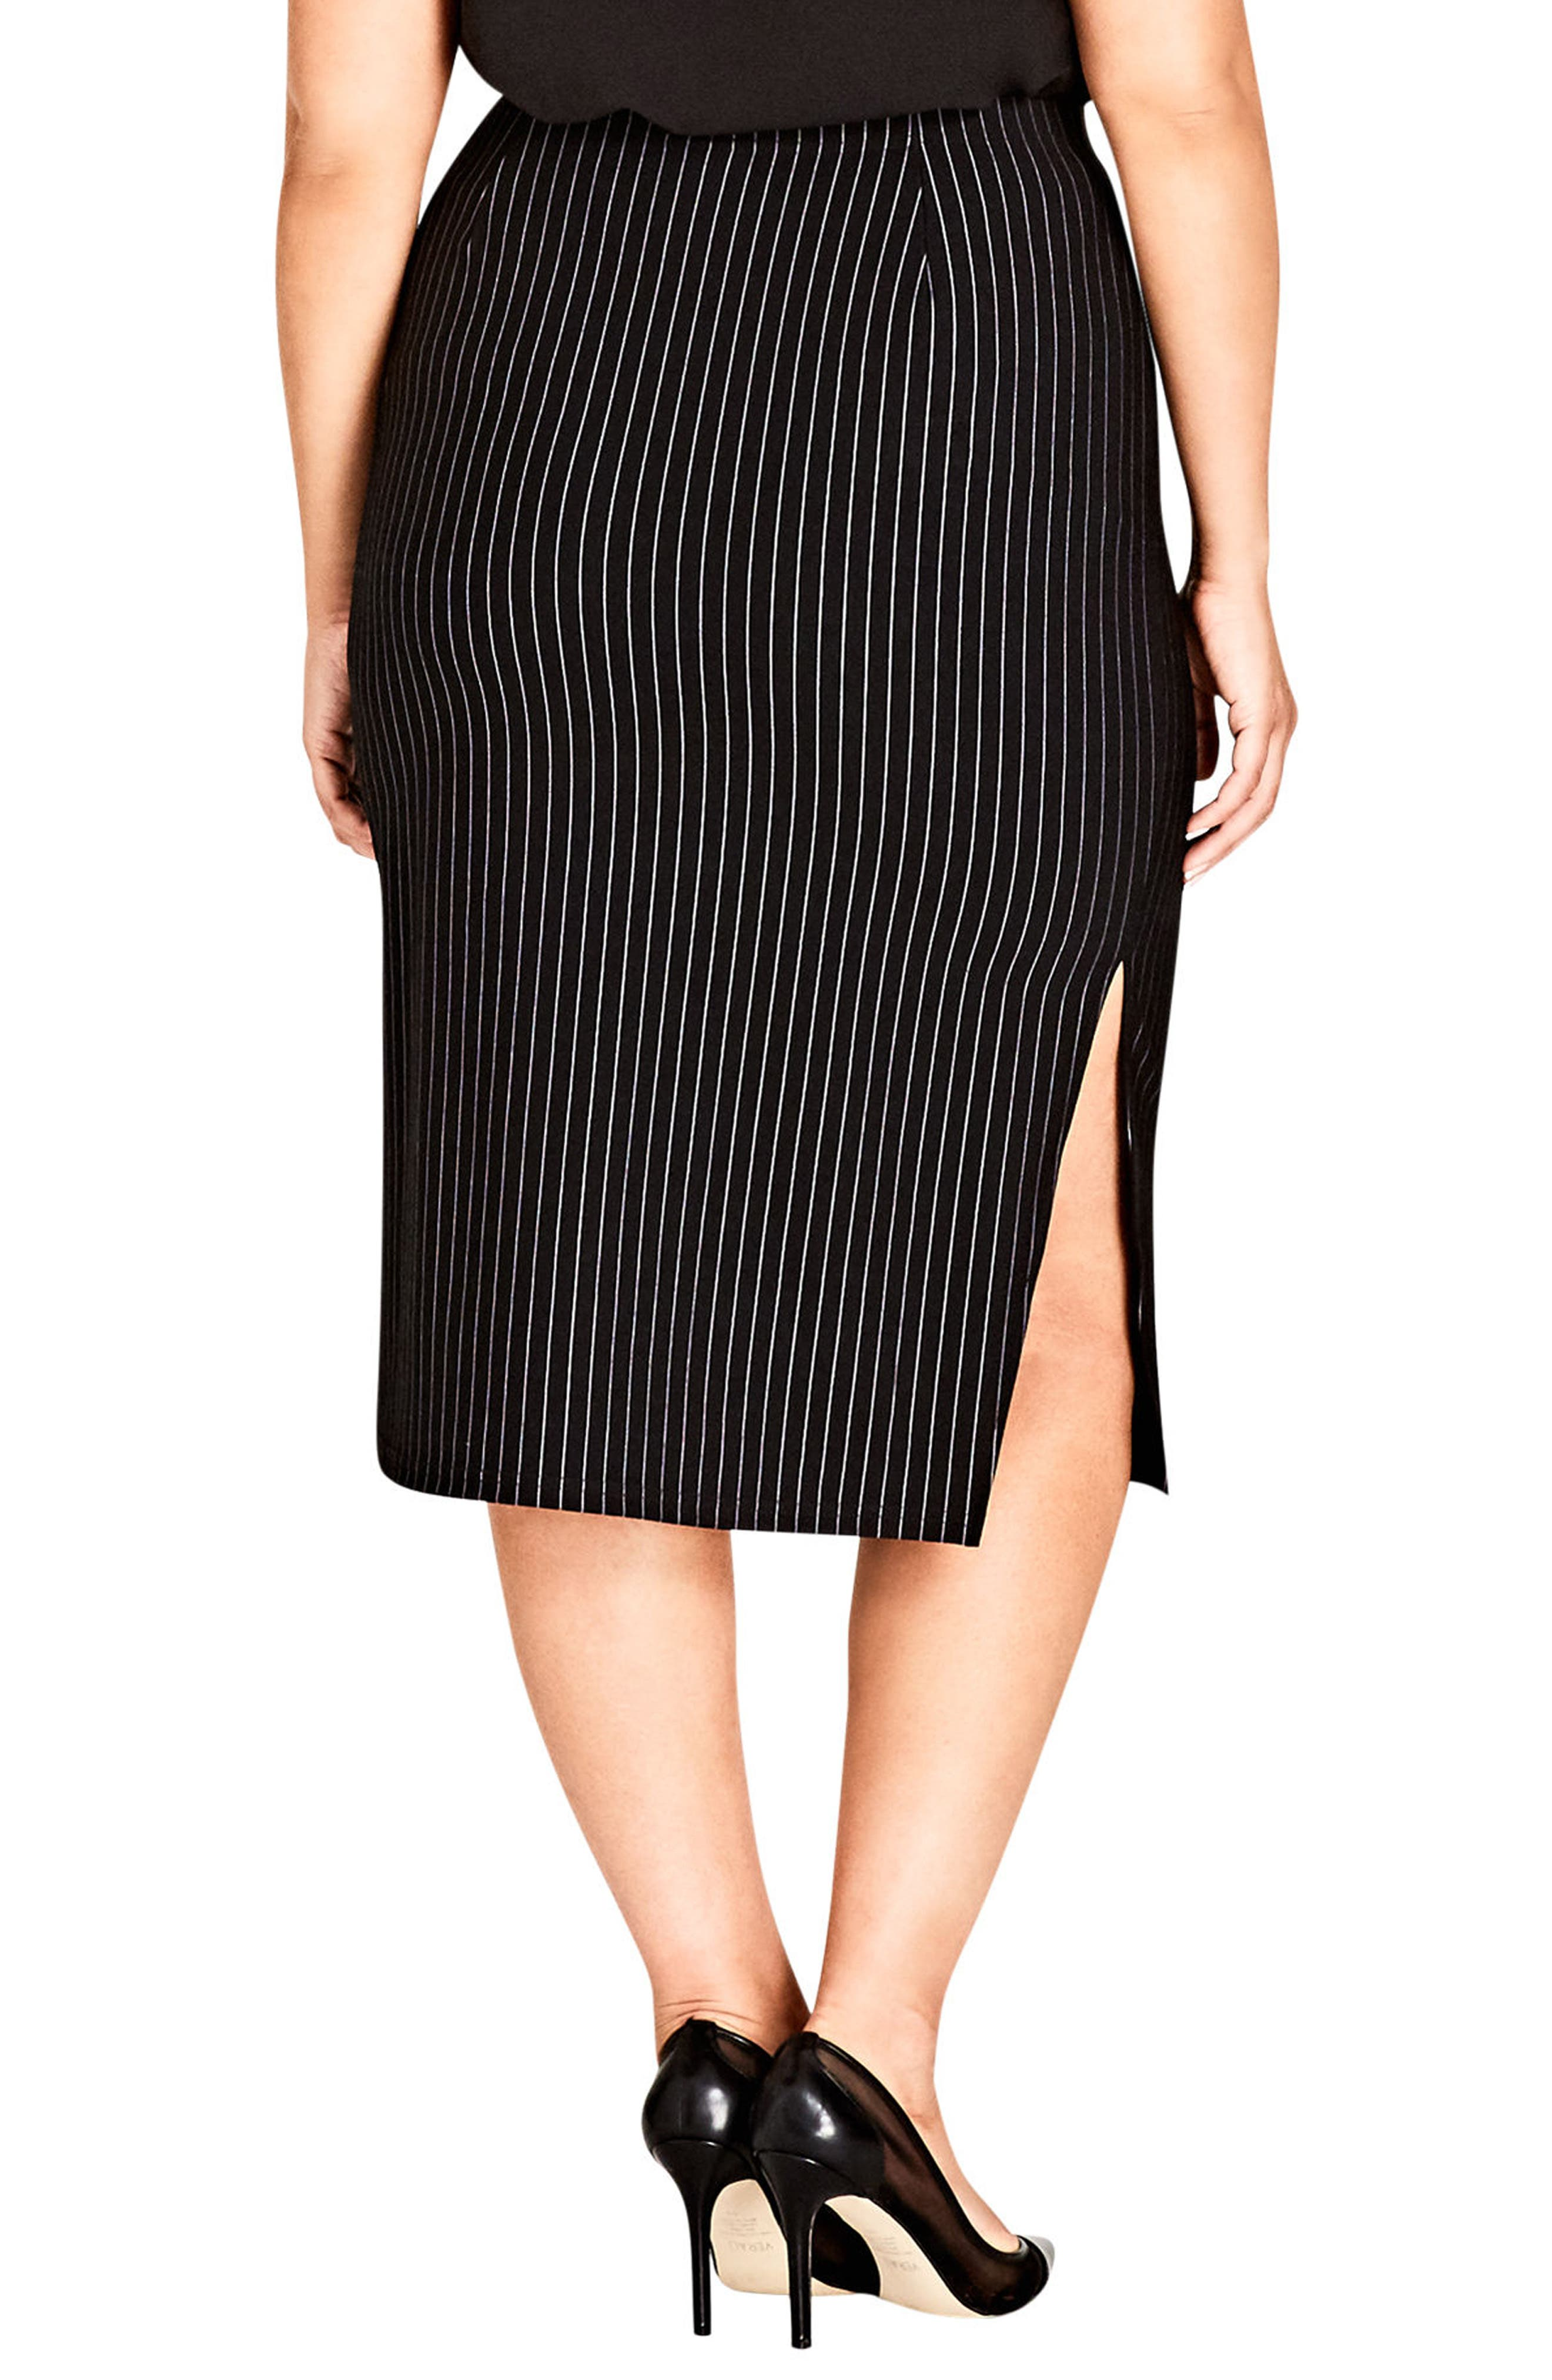 Chic City On Point Pencil skirt,                             Alternate thumbnail 2, color,